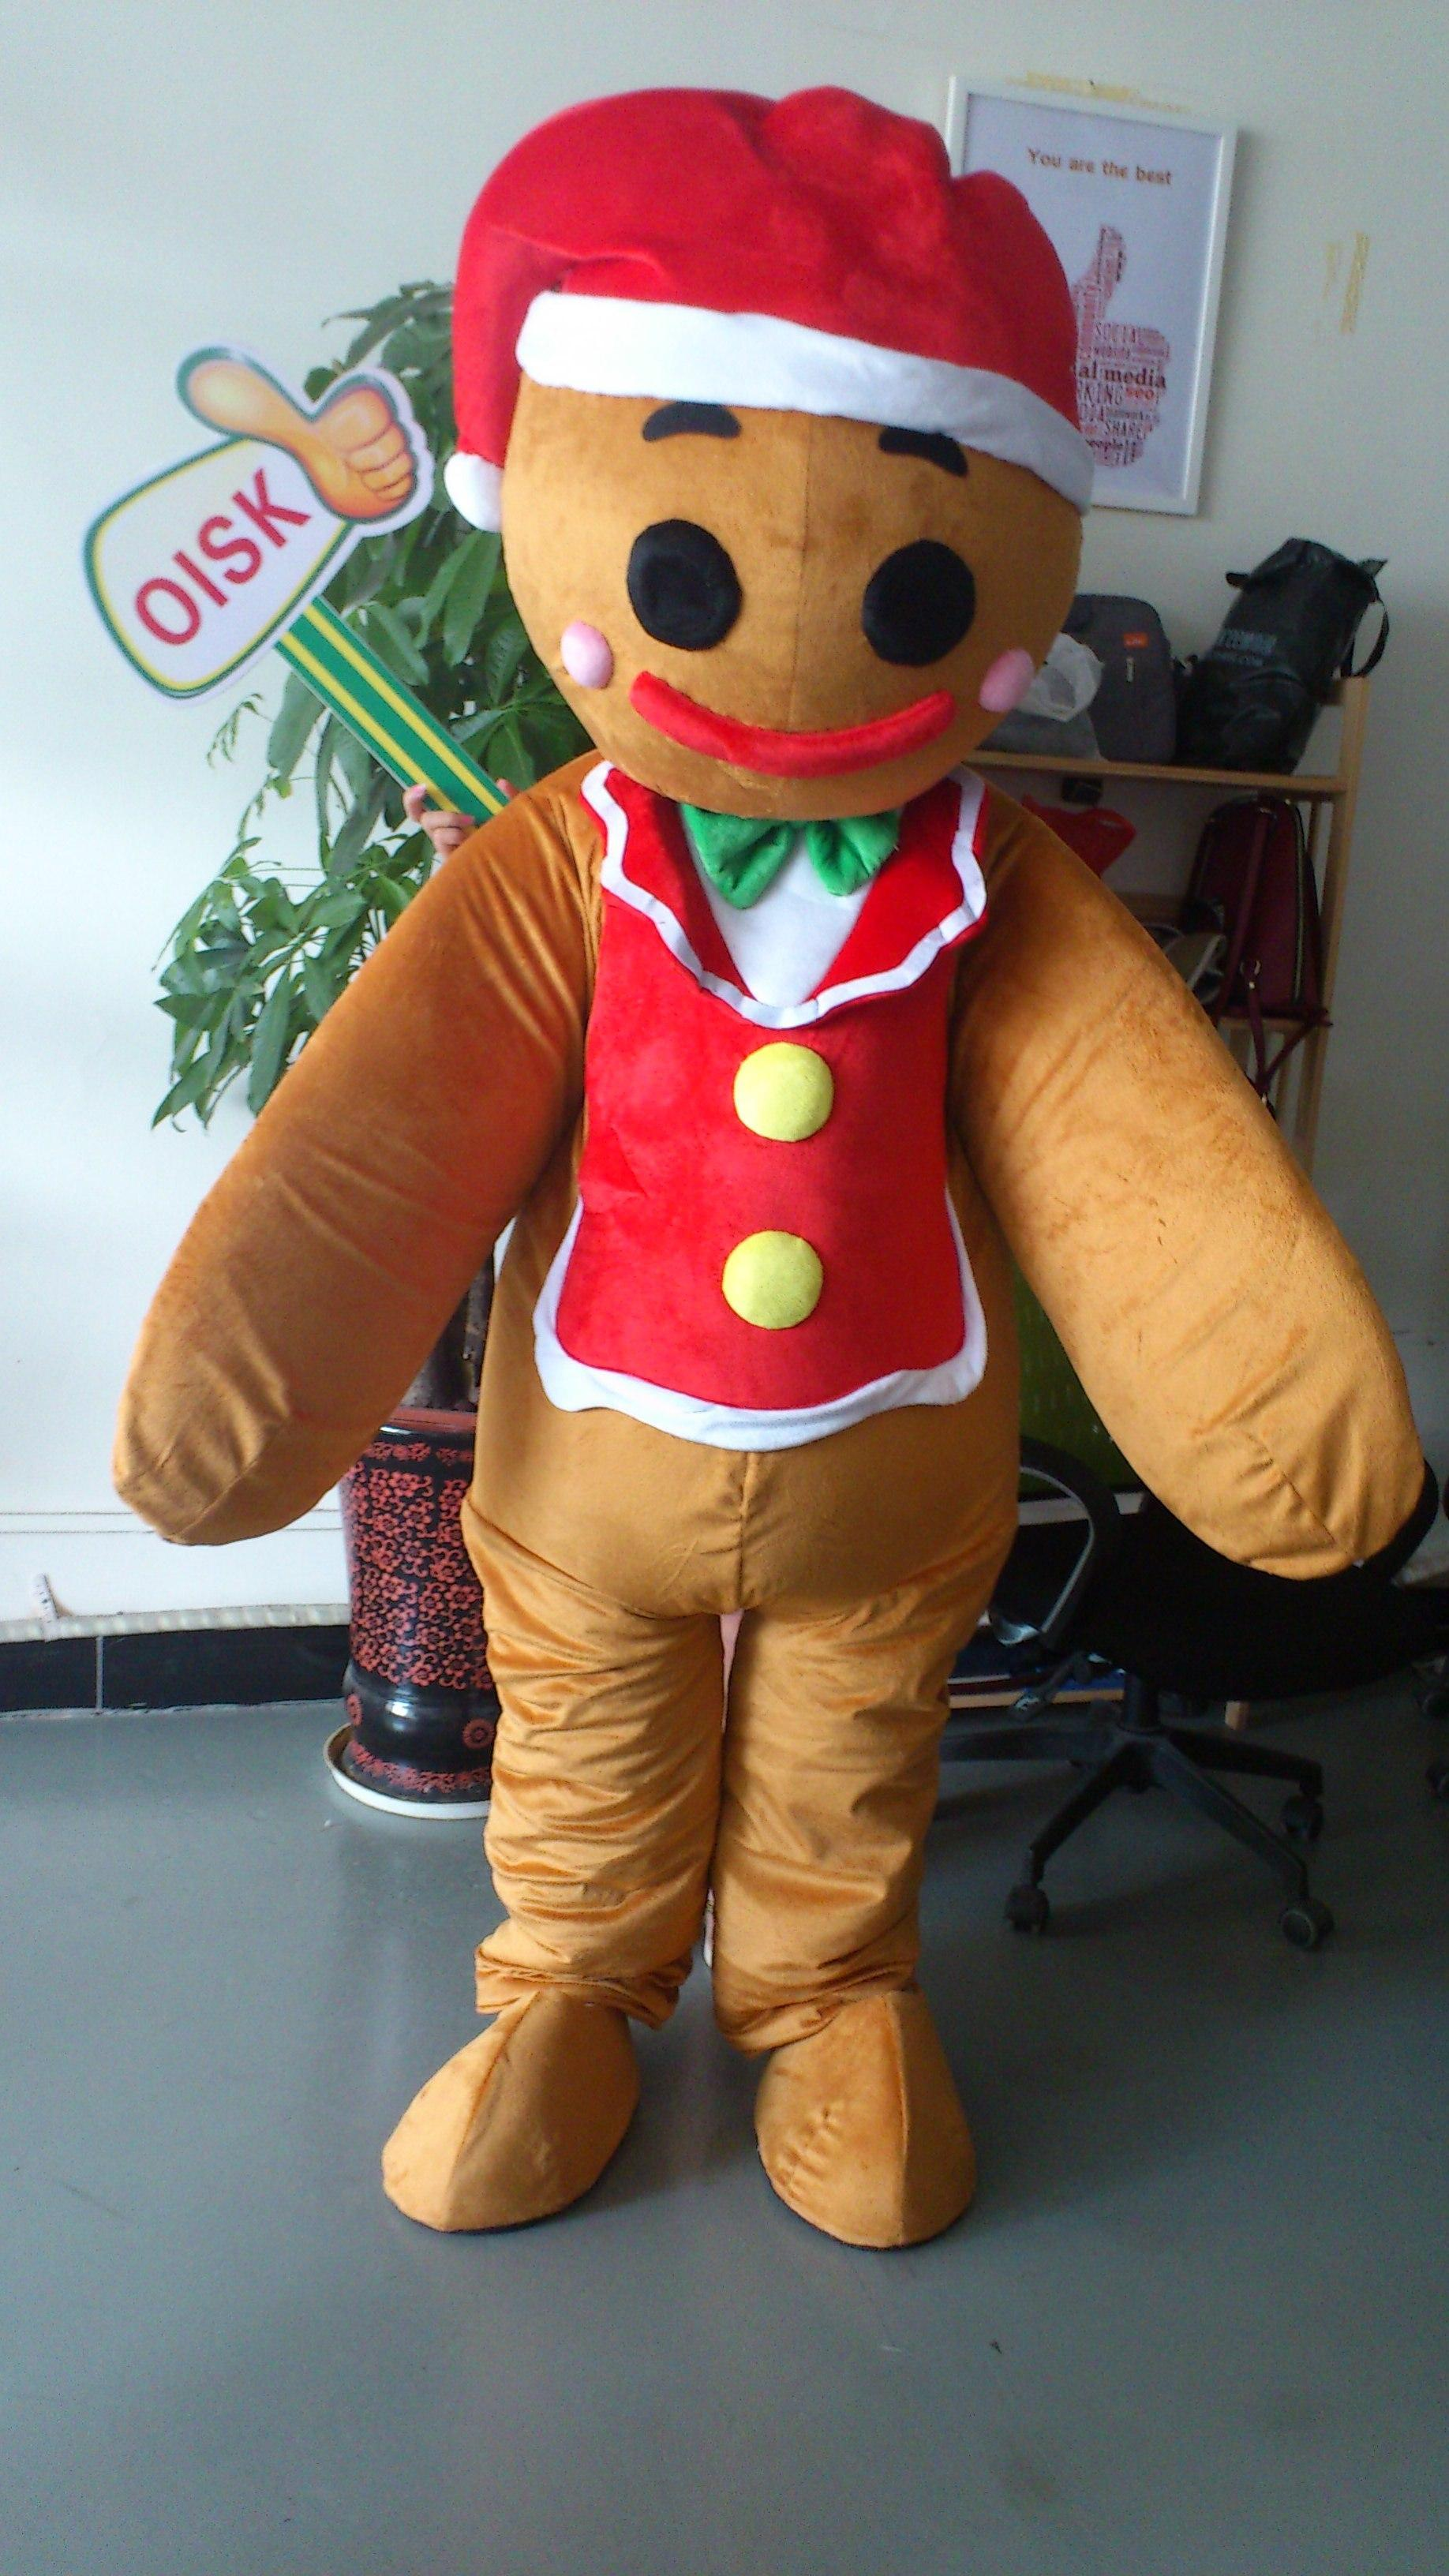 oisk the gingerbread man mascot costume halloween christmas xmas adult size outfit plush costumes fancy dress scary halloween costumes couple costumes from